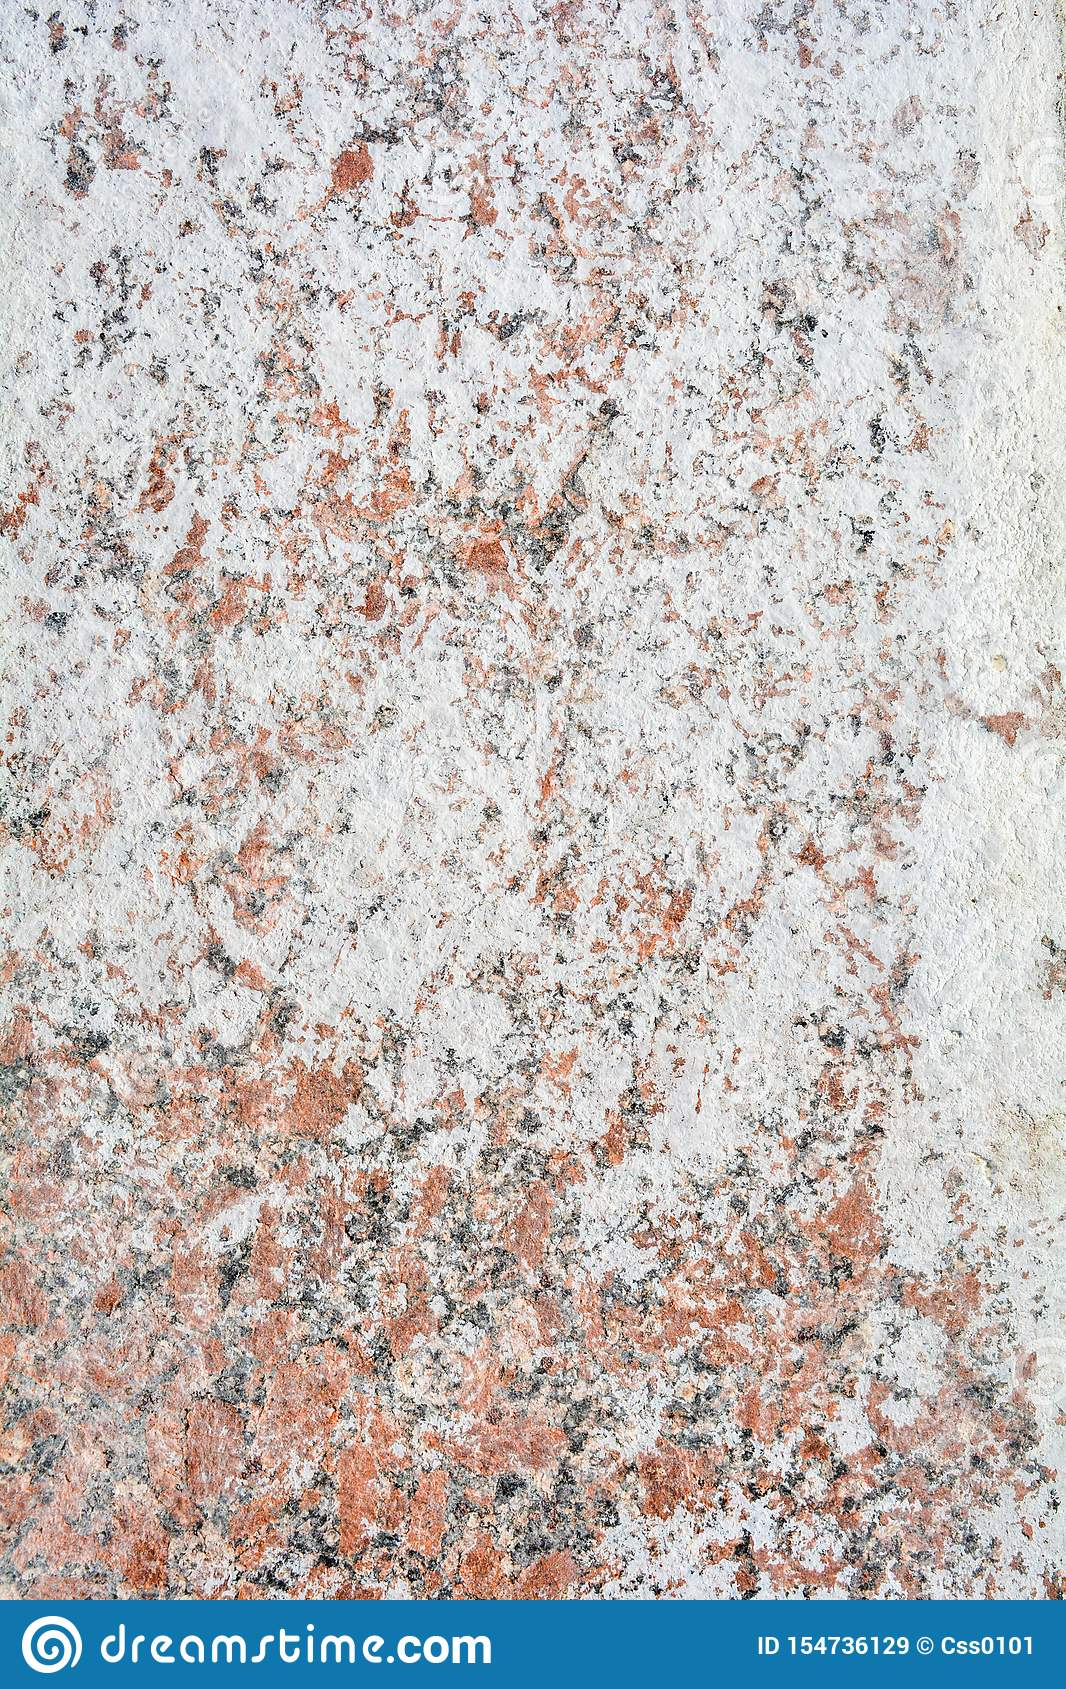 Texture of polished granite stone floor with white dense mud like chalk or lime